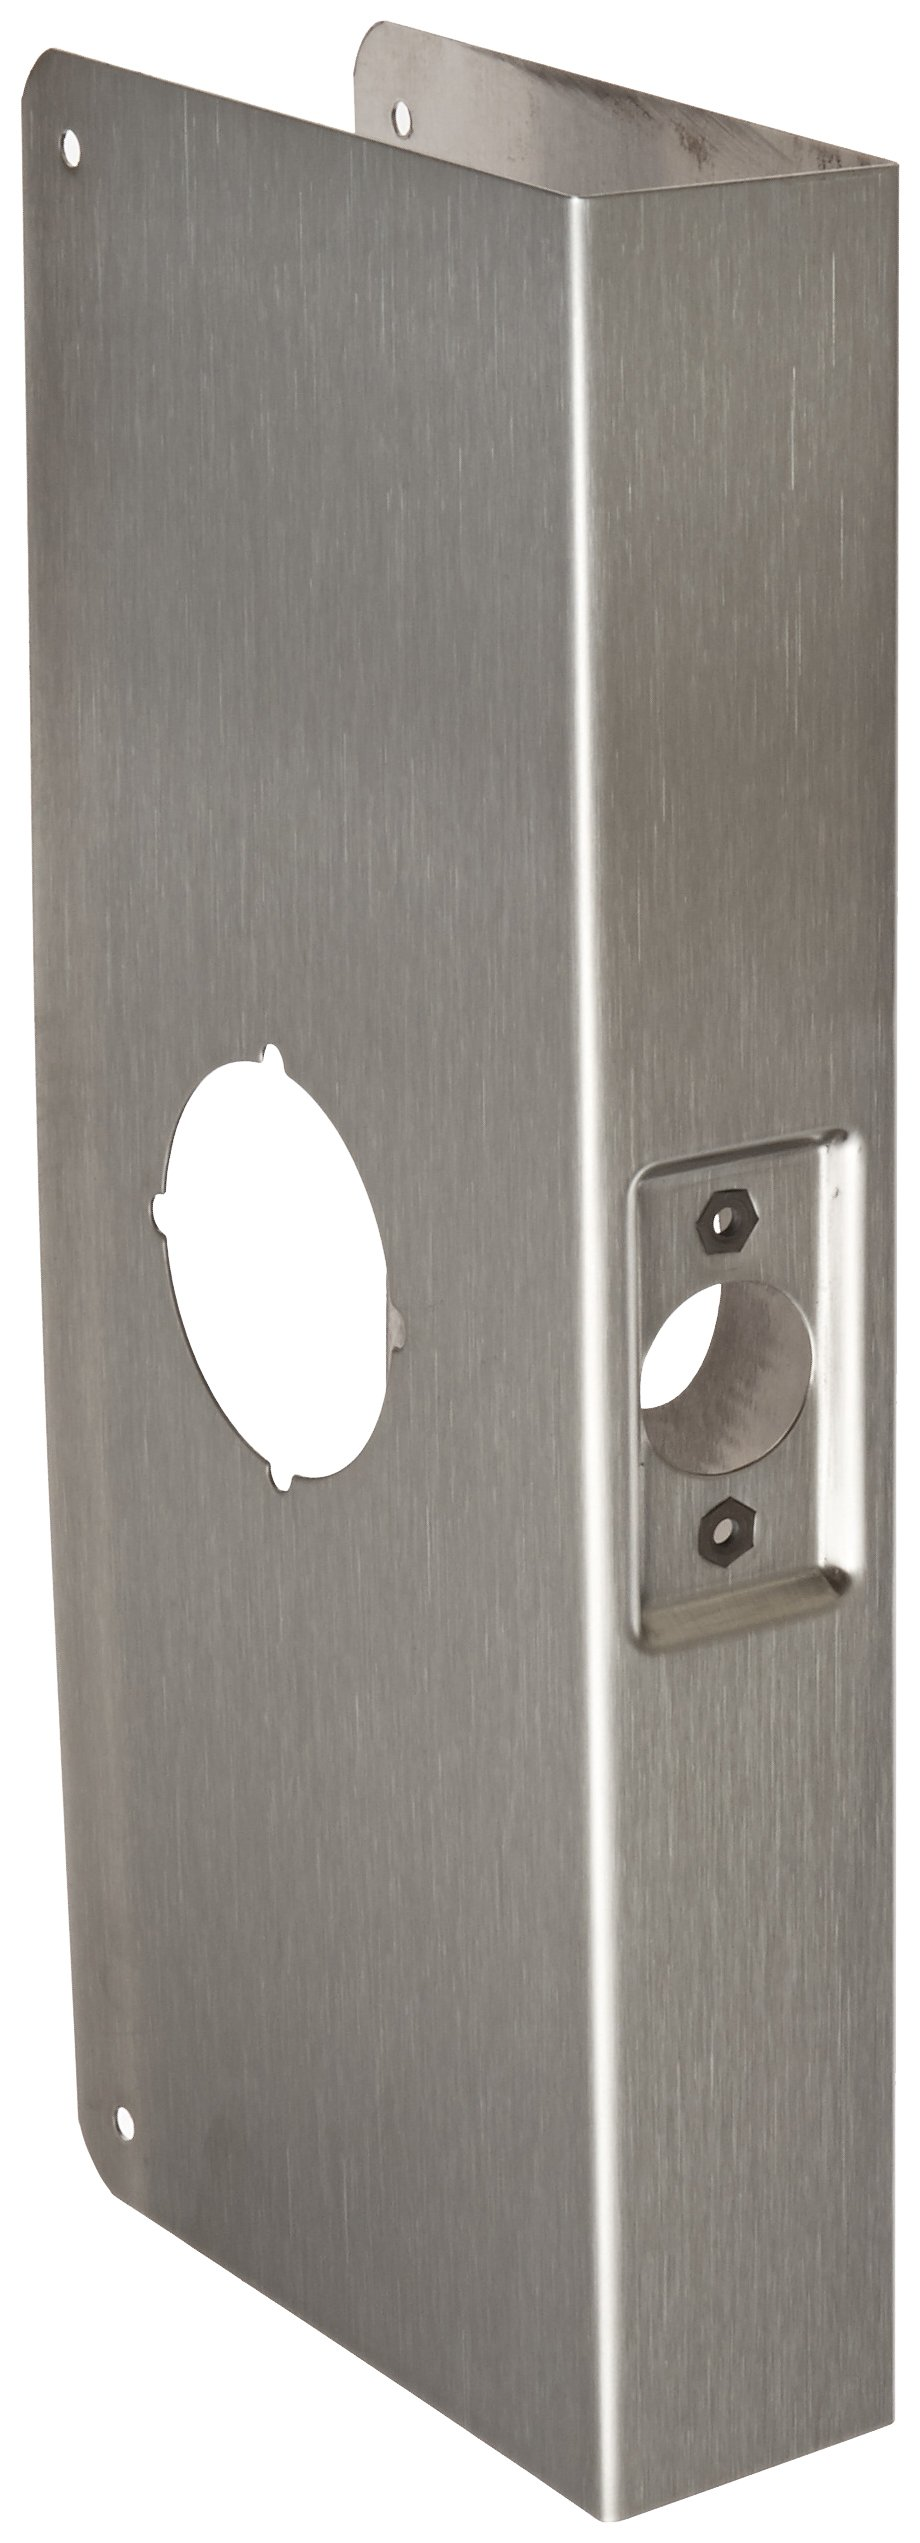 Don-Jo 12-CW 22 Gauge Stainless Steel Classic Wrap-Around Plate, Satin Stainless Steel Finish, 4-1/4'' Width x 12'' Height, For Cylinder Door Lock with 2-1/8'' Hole